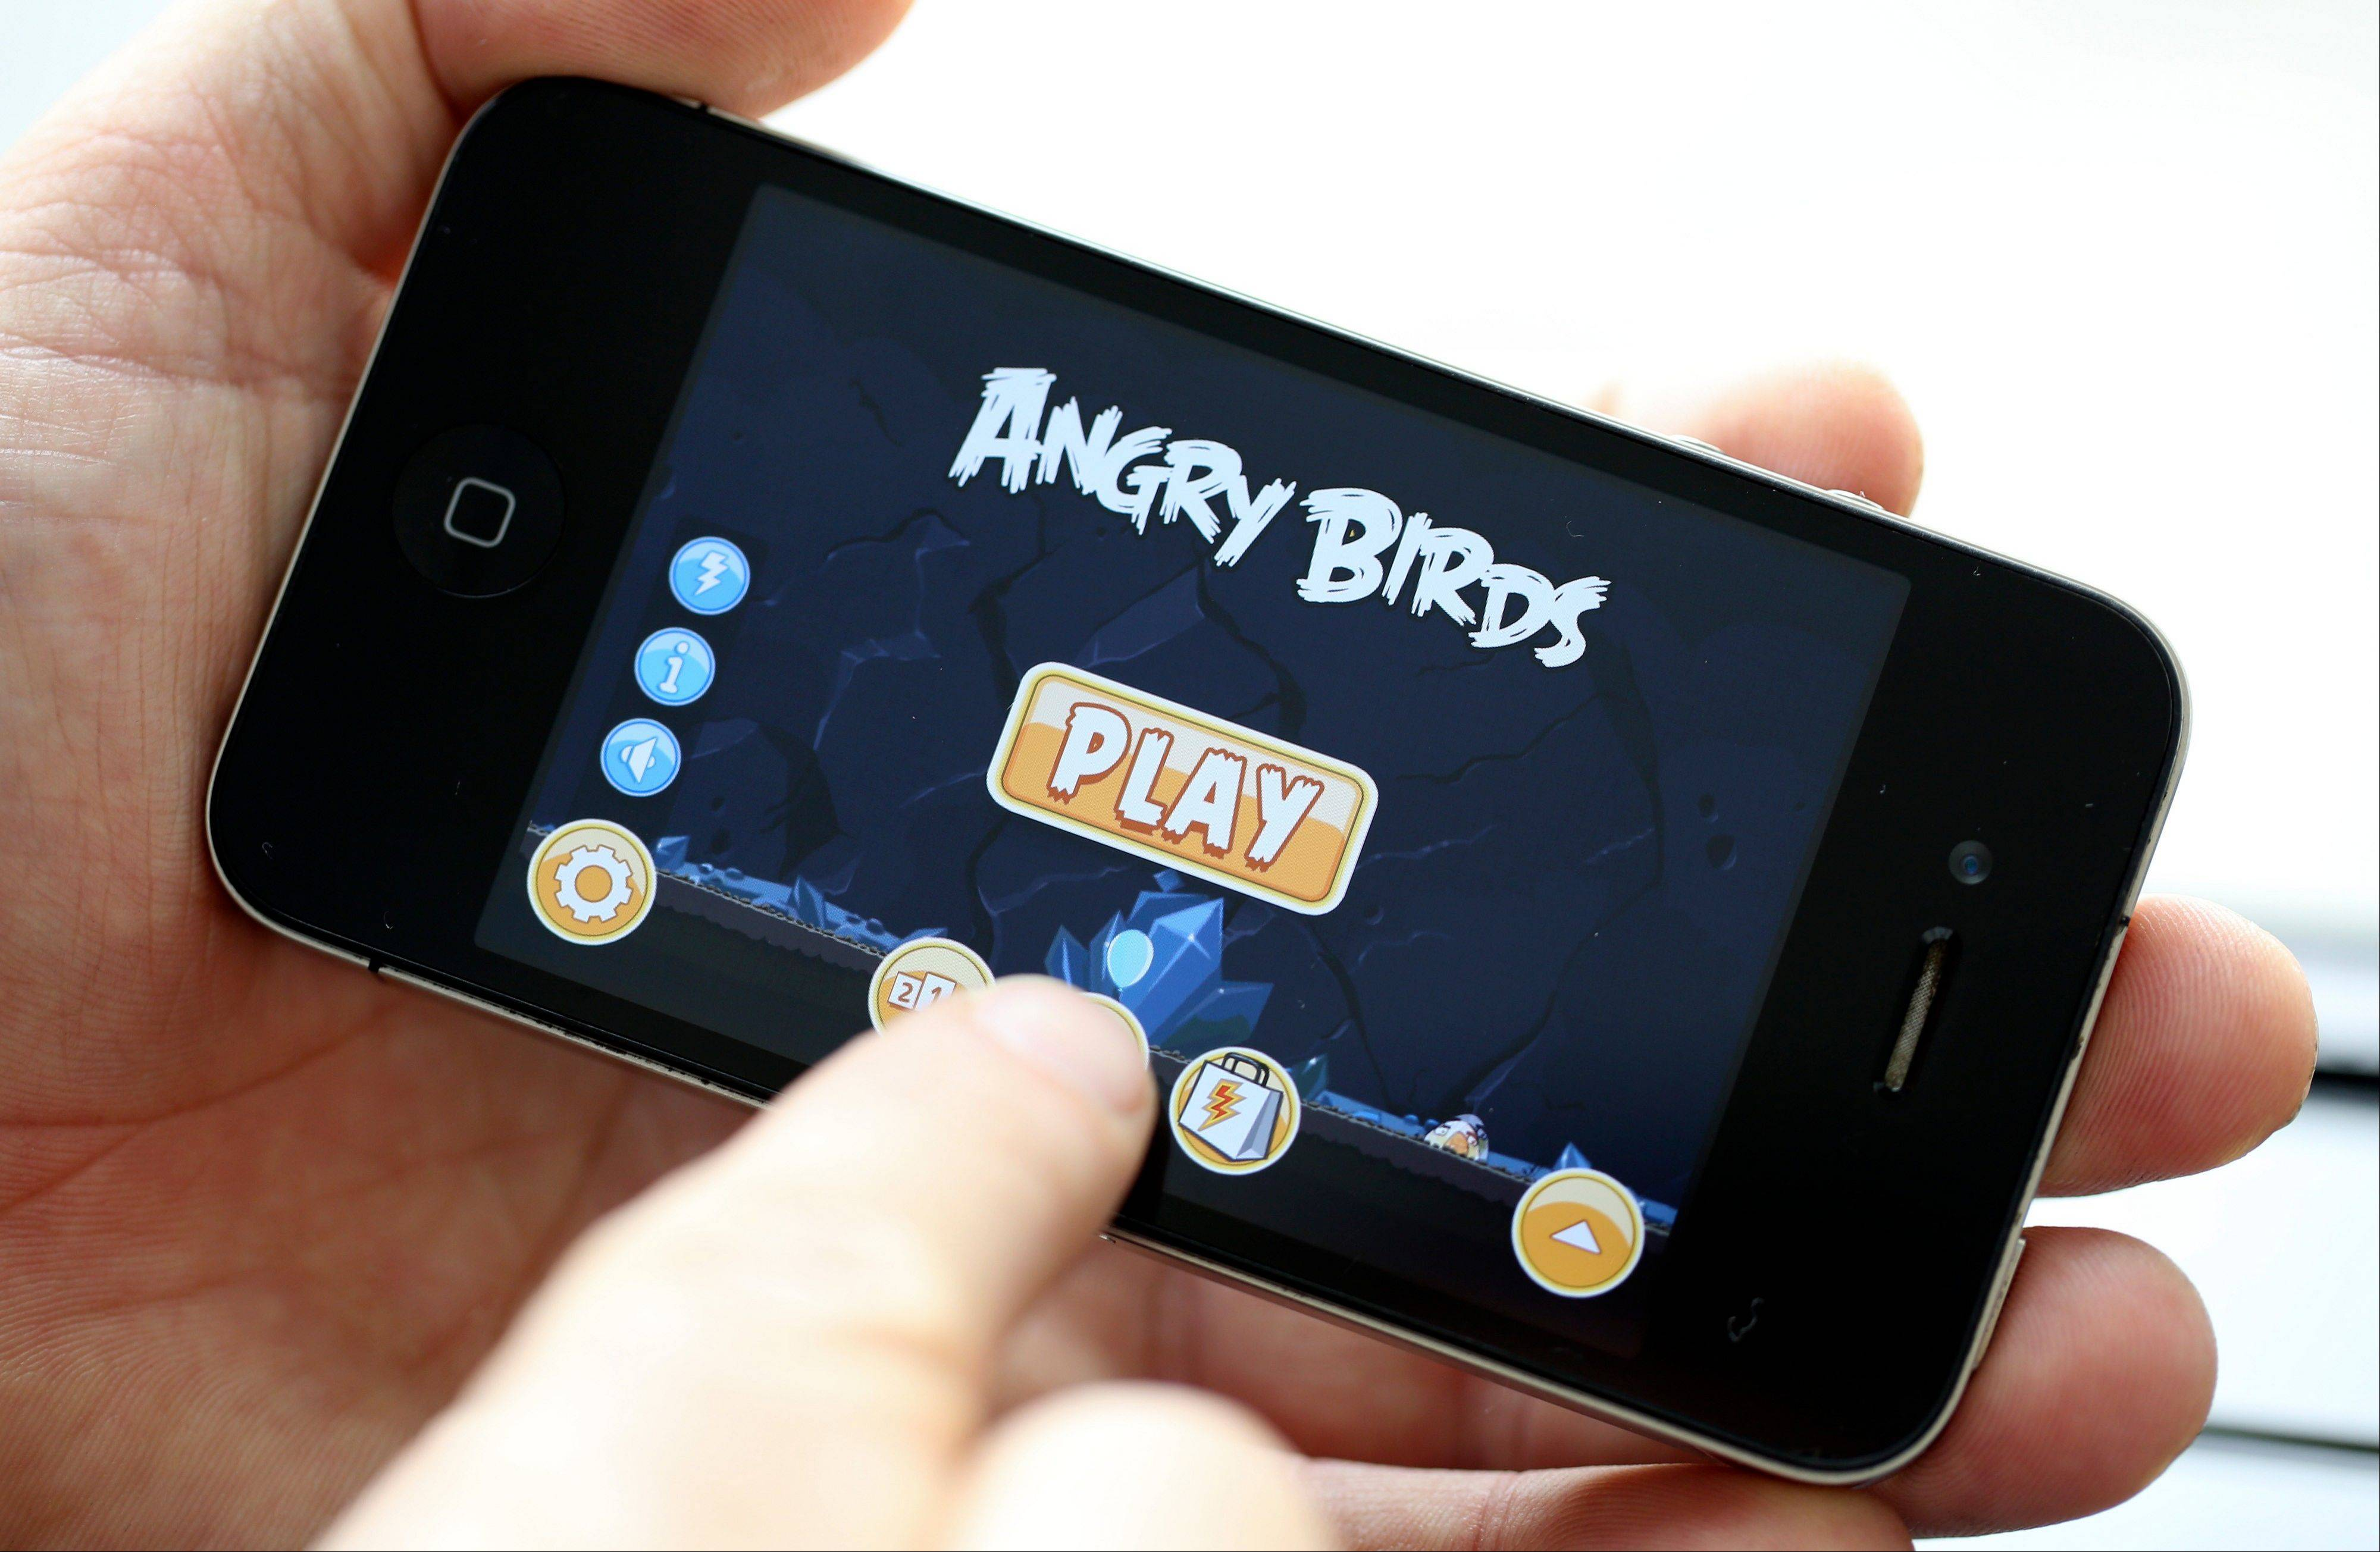 The ''Angry Birds'' mobile-phone game, designed by Rovio Mobile Oy is seen on an Apple Inc. iPhone 4 smartphone in this arranged photograph in London. Nokia and Motorola revealed new smartphones last week in hopes of generating interest before Apple announced its new iPhone Wednesday.